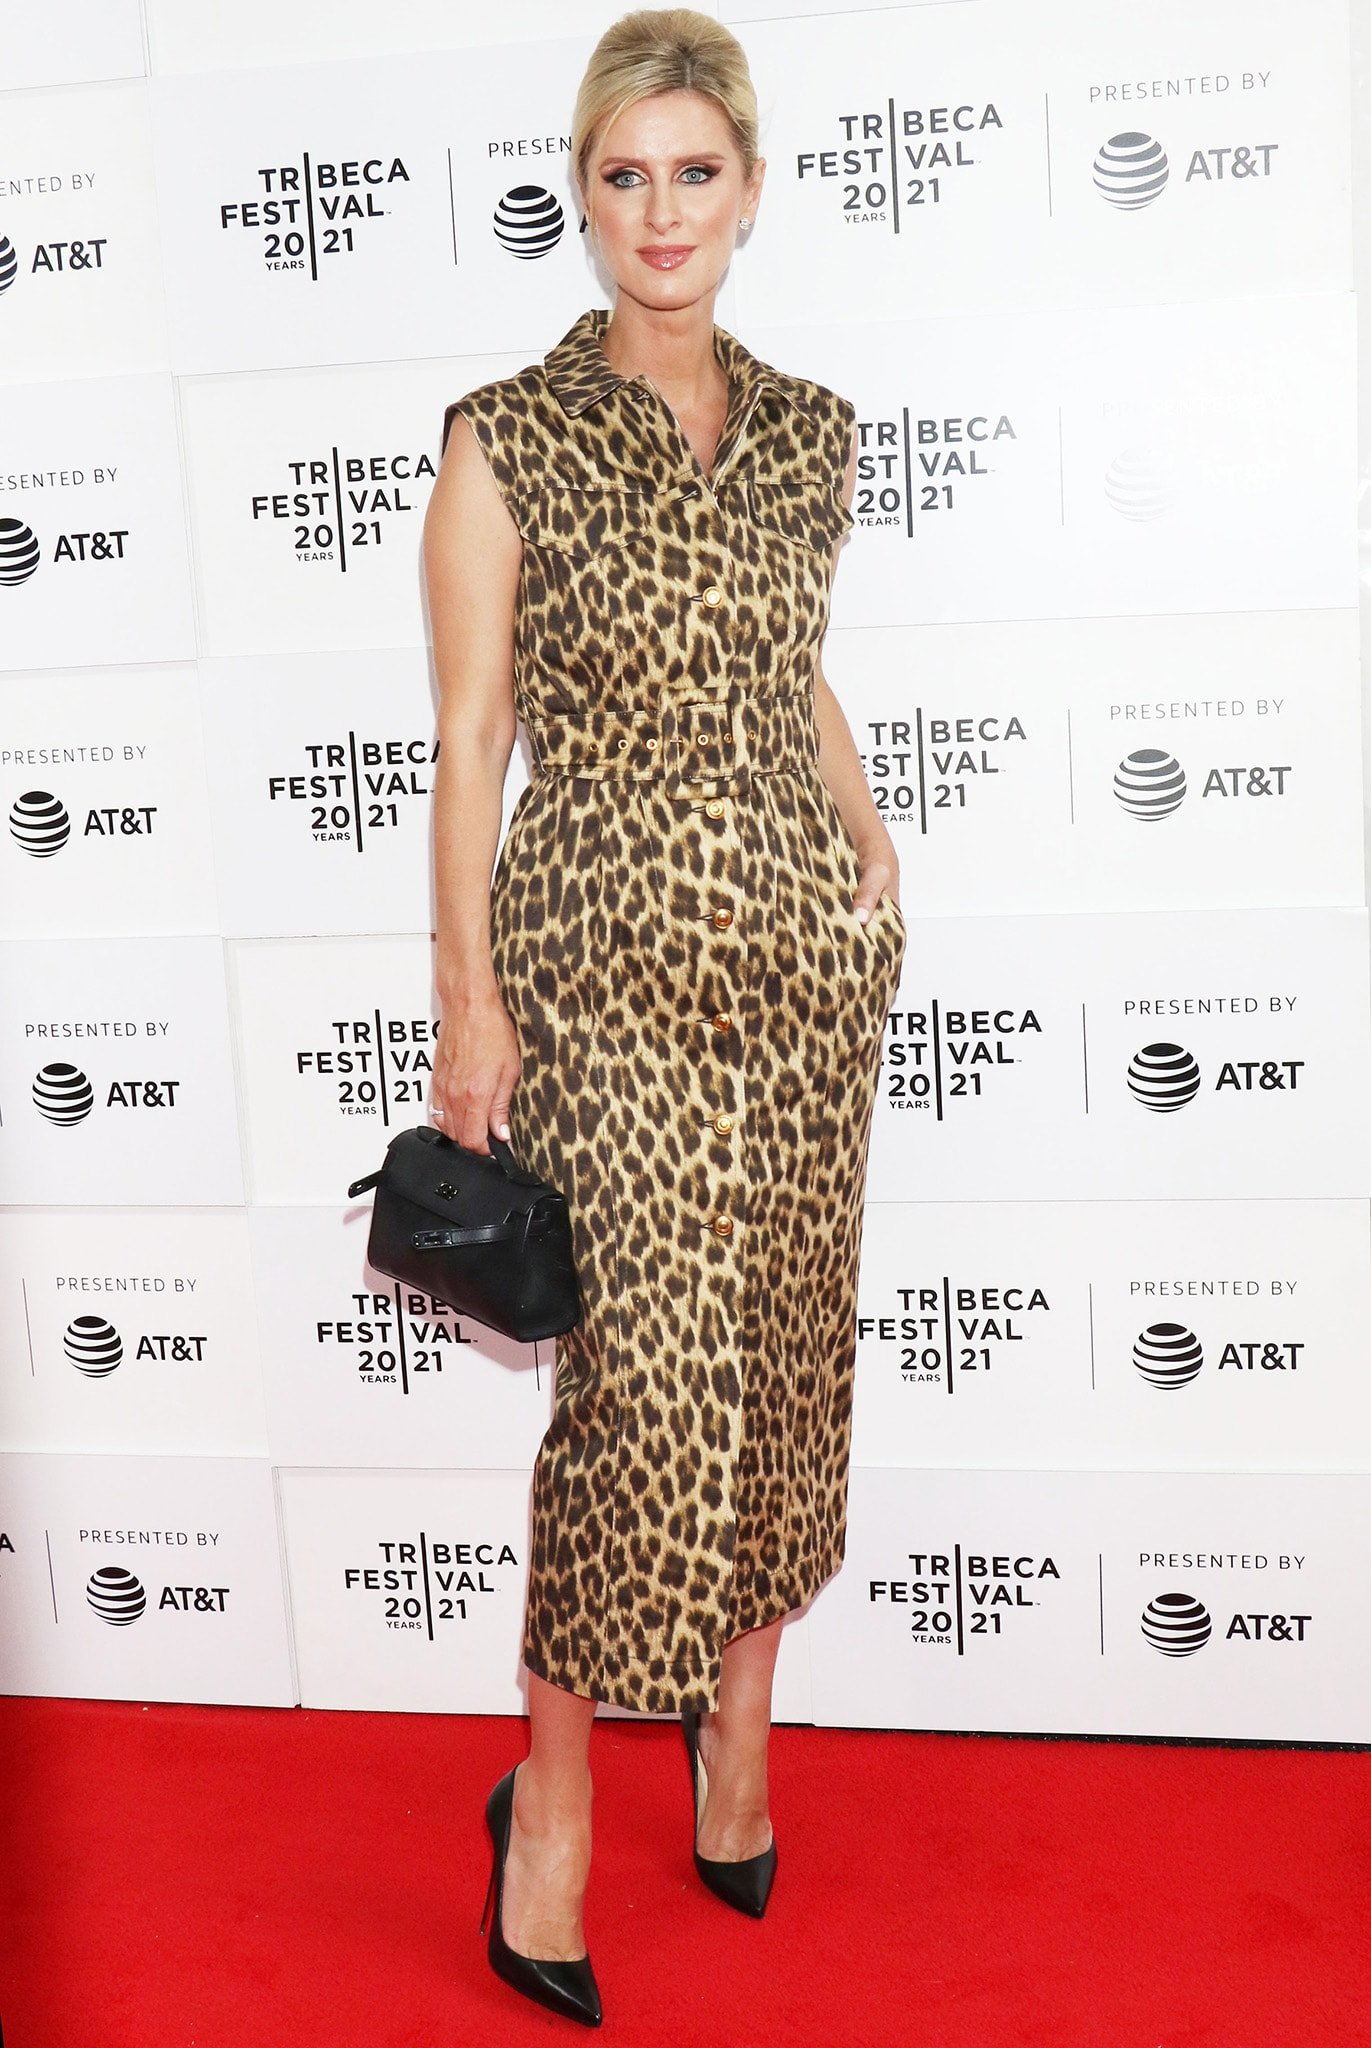 Nicky Hilton shows support for her sister in a Sportmax leopard-print shirtdress